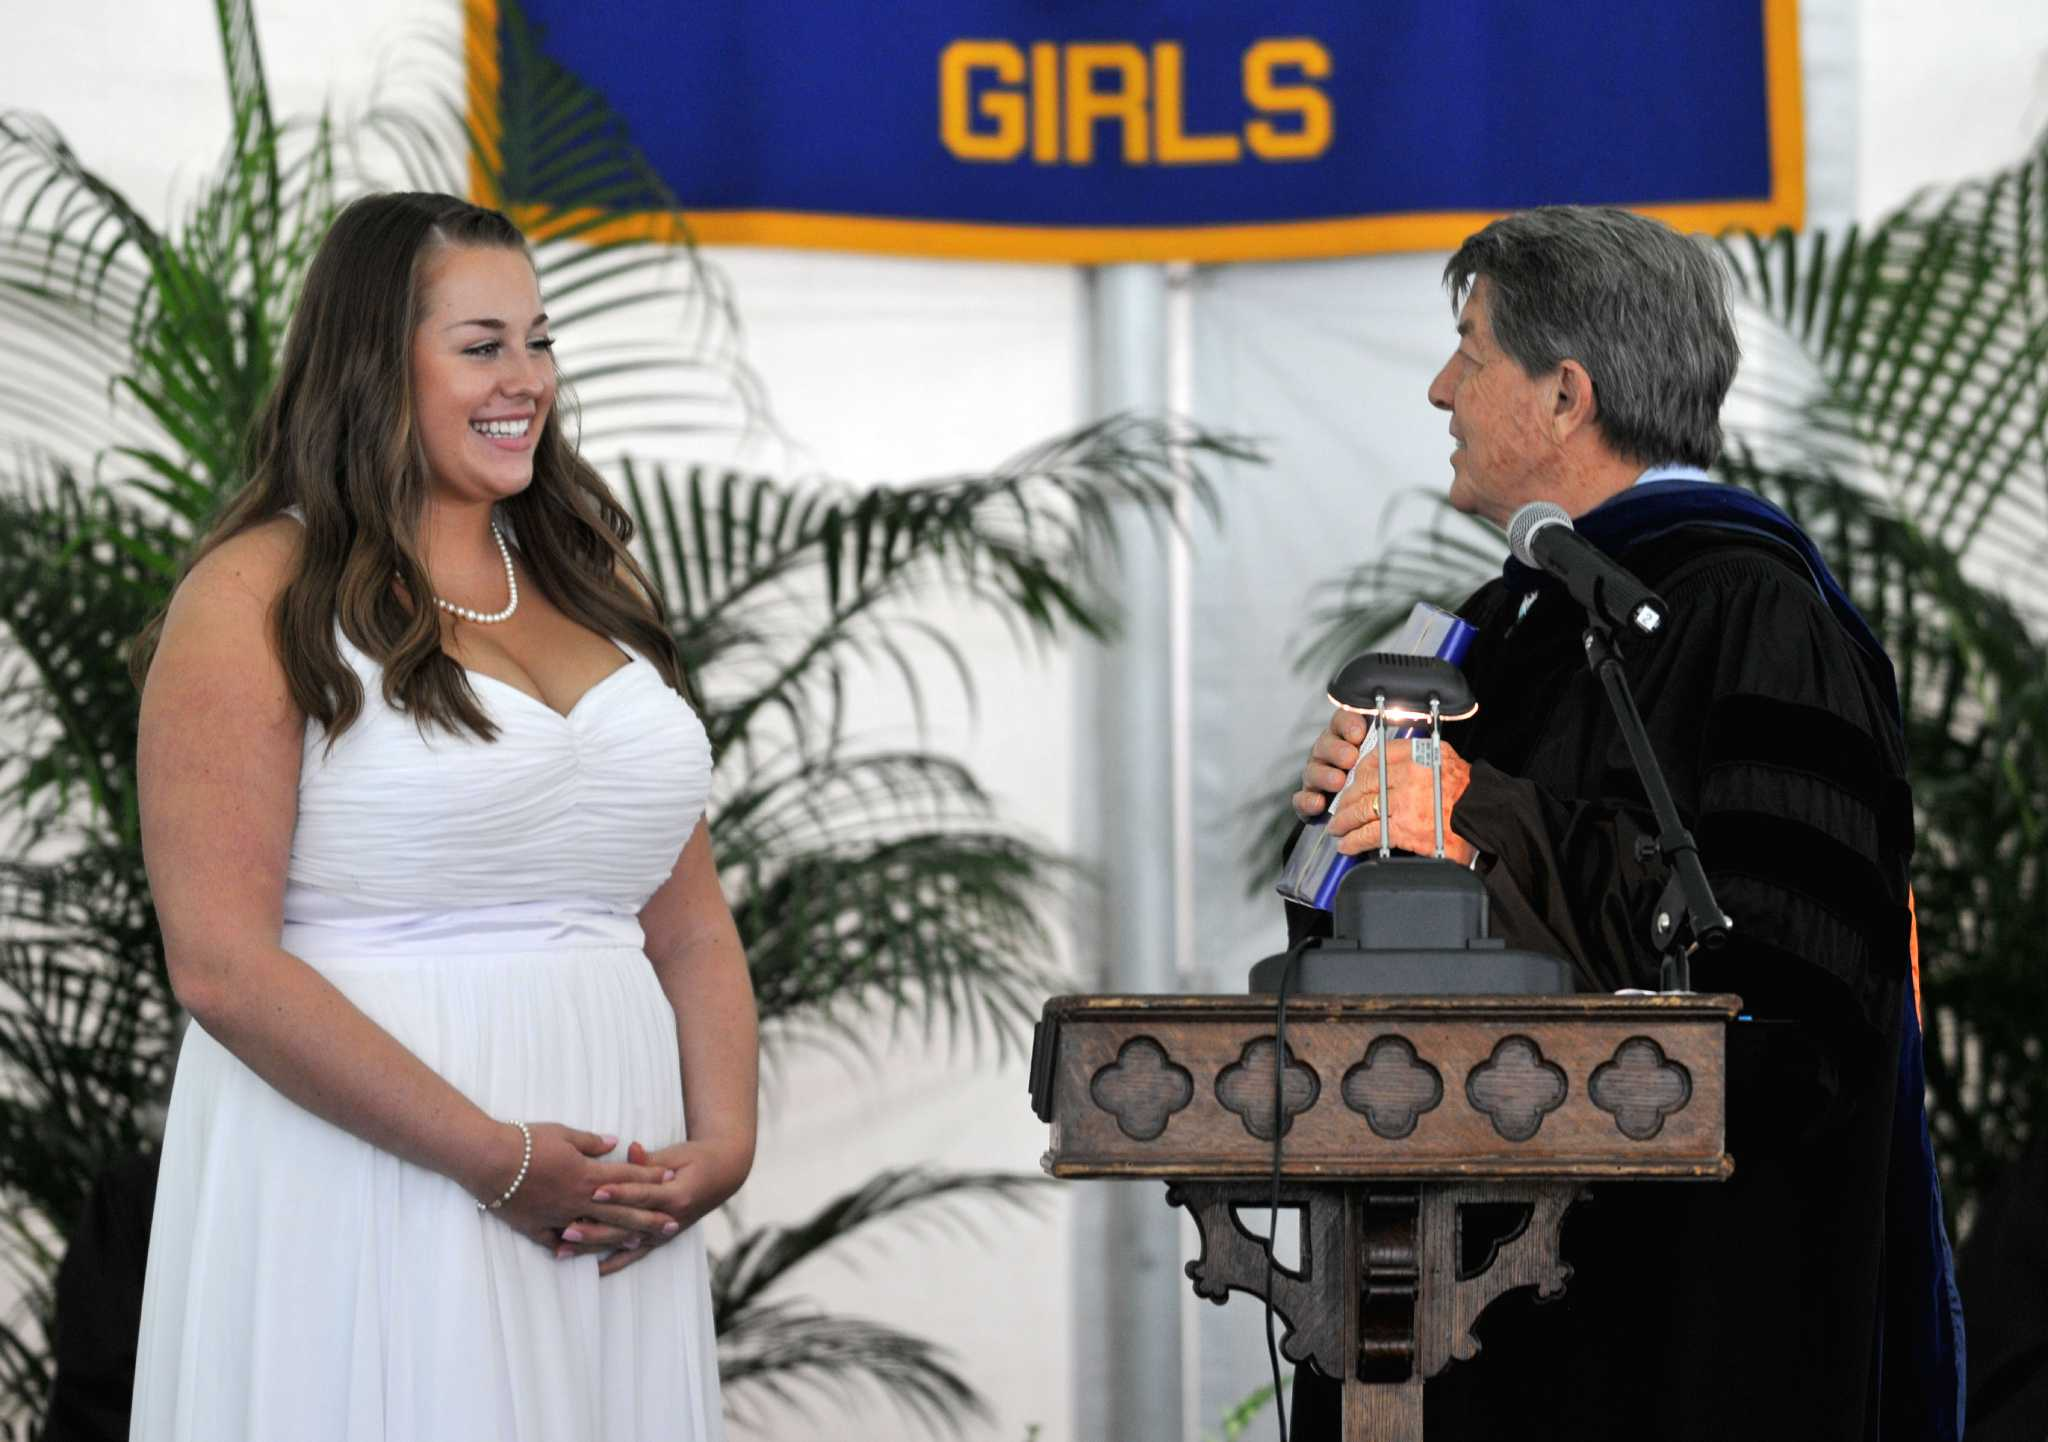 Photos: Albany Academy for Girls graduation